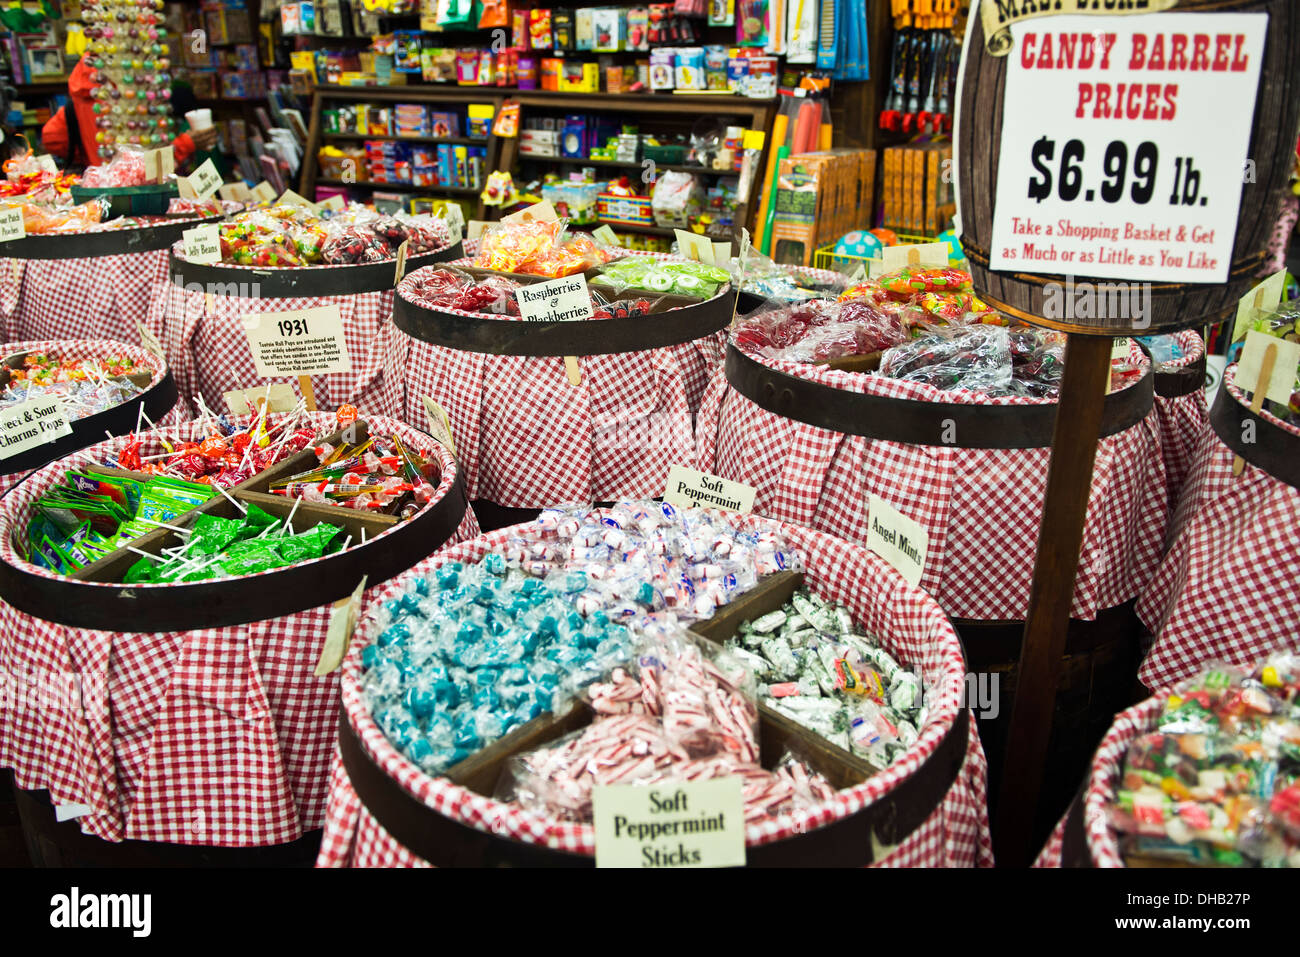 Candy barrels in the Mast General Store in Asheville North Carolina - Stock Image